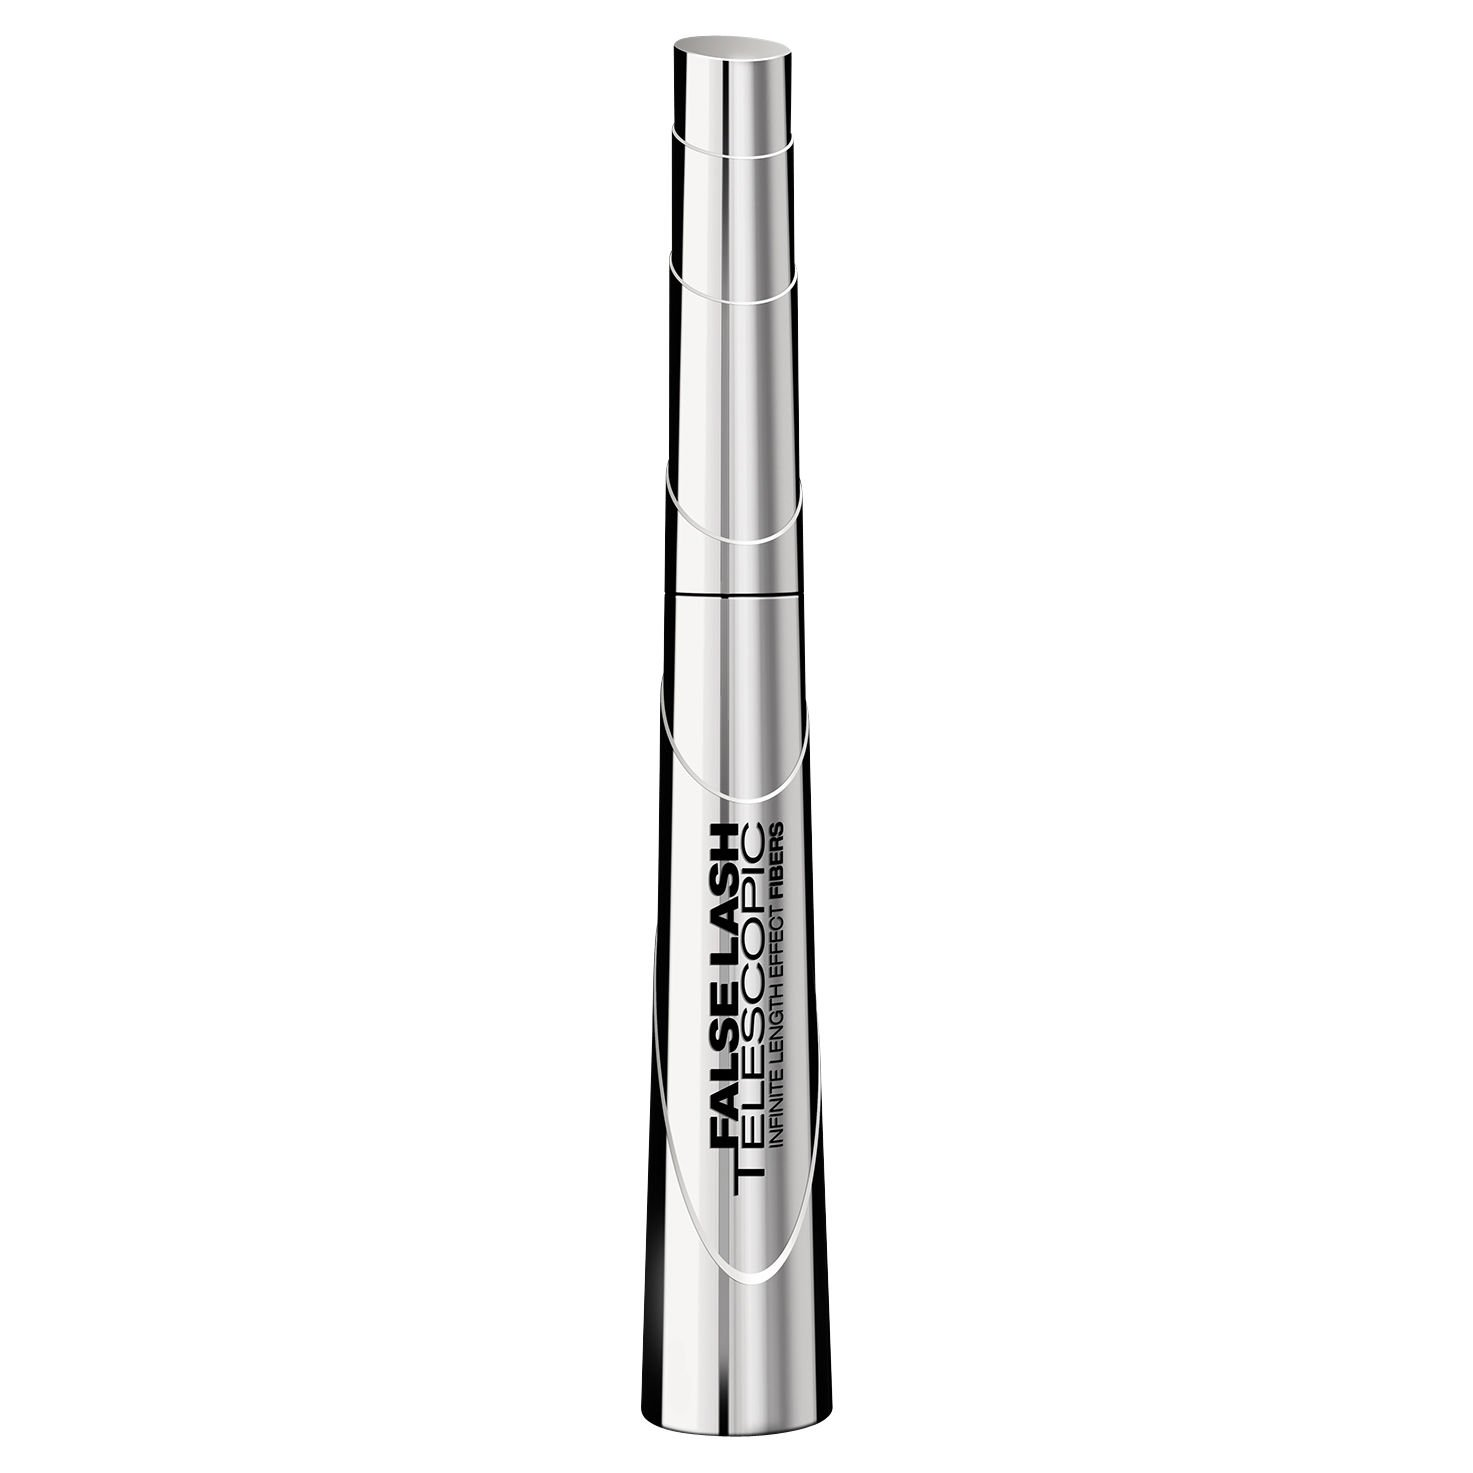 L'Oréal Paris, Mascara Ciglia finte Telescopic, colore: Magnetic Black, 9 ml L' Oréal Paris L' Oreal Make Up 3600522097341